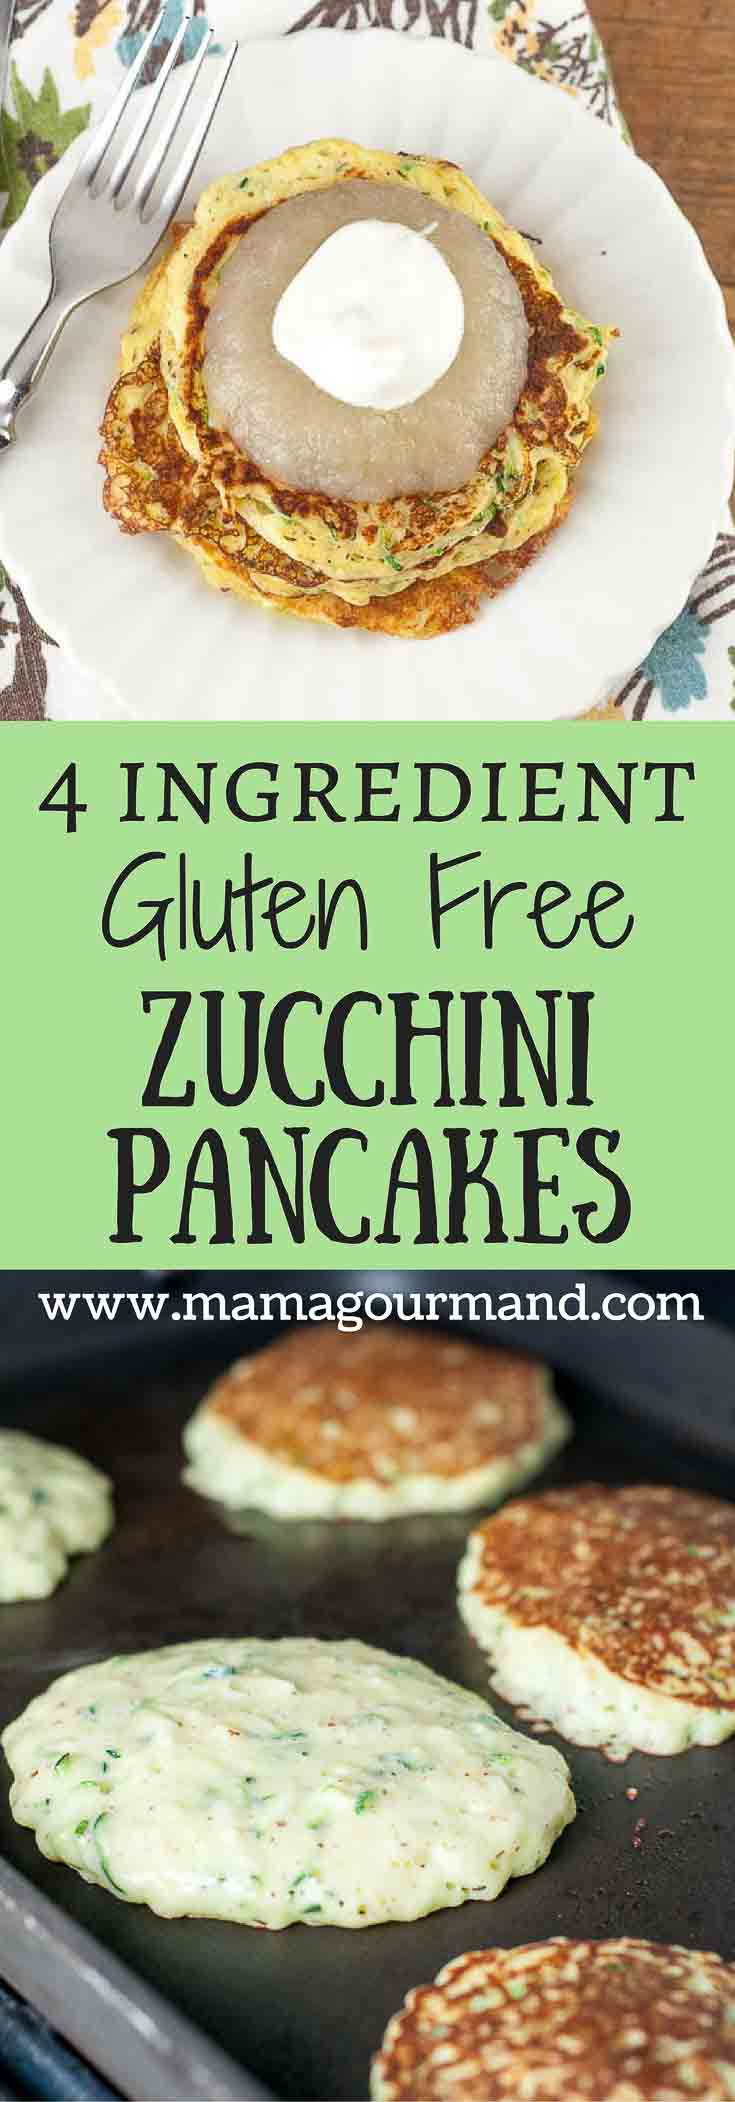 Only 4 simple ingredients stand in the way of making these Easy Gluten Free Zucchini Pancakes. Hands down the best version of all the zucchini pancake recipes out there! https://www.mamagourmand.com